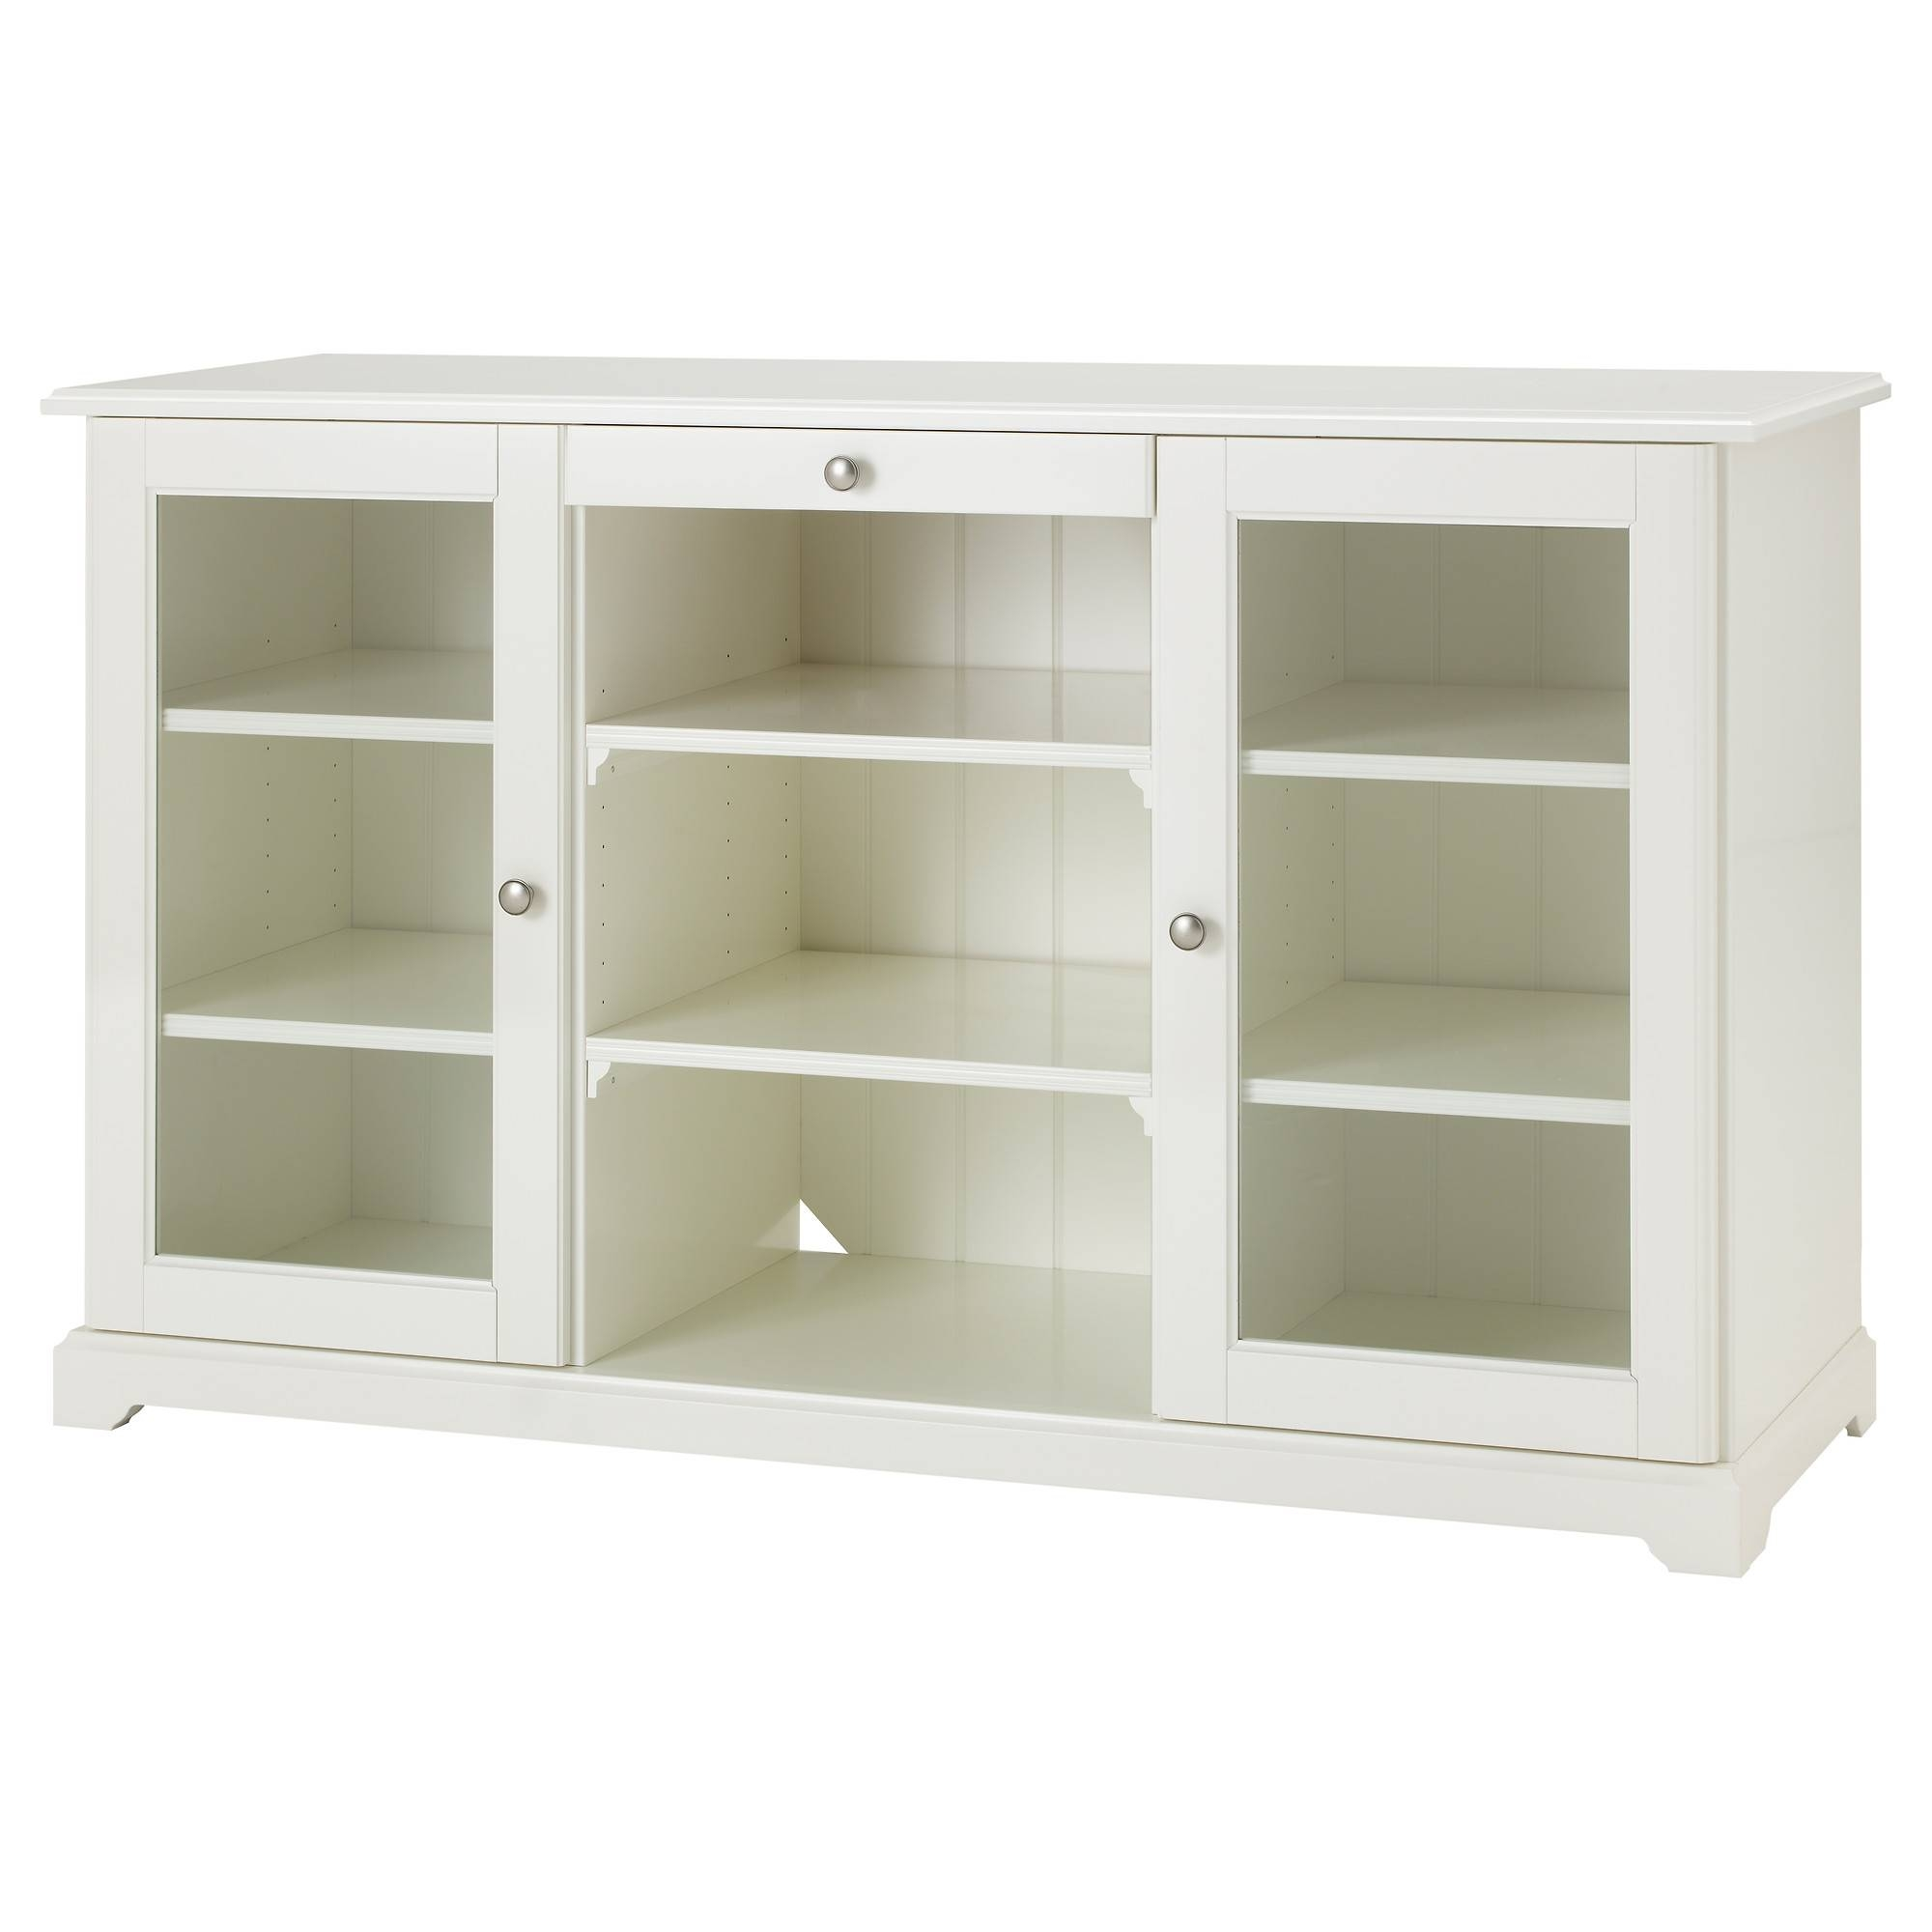 Sideboards. Outstanding White Sideboards And Buffets: White within Sideboards With Glass Doors (Image 29 of 30)